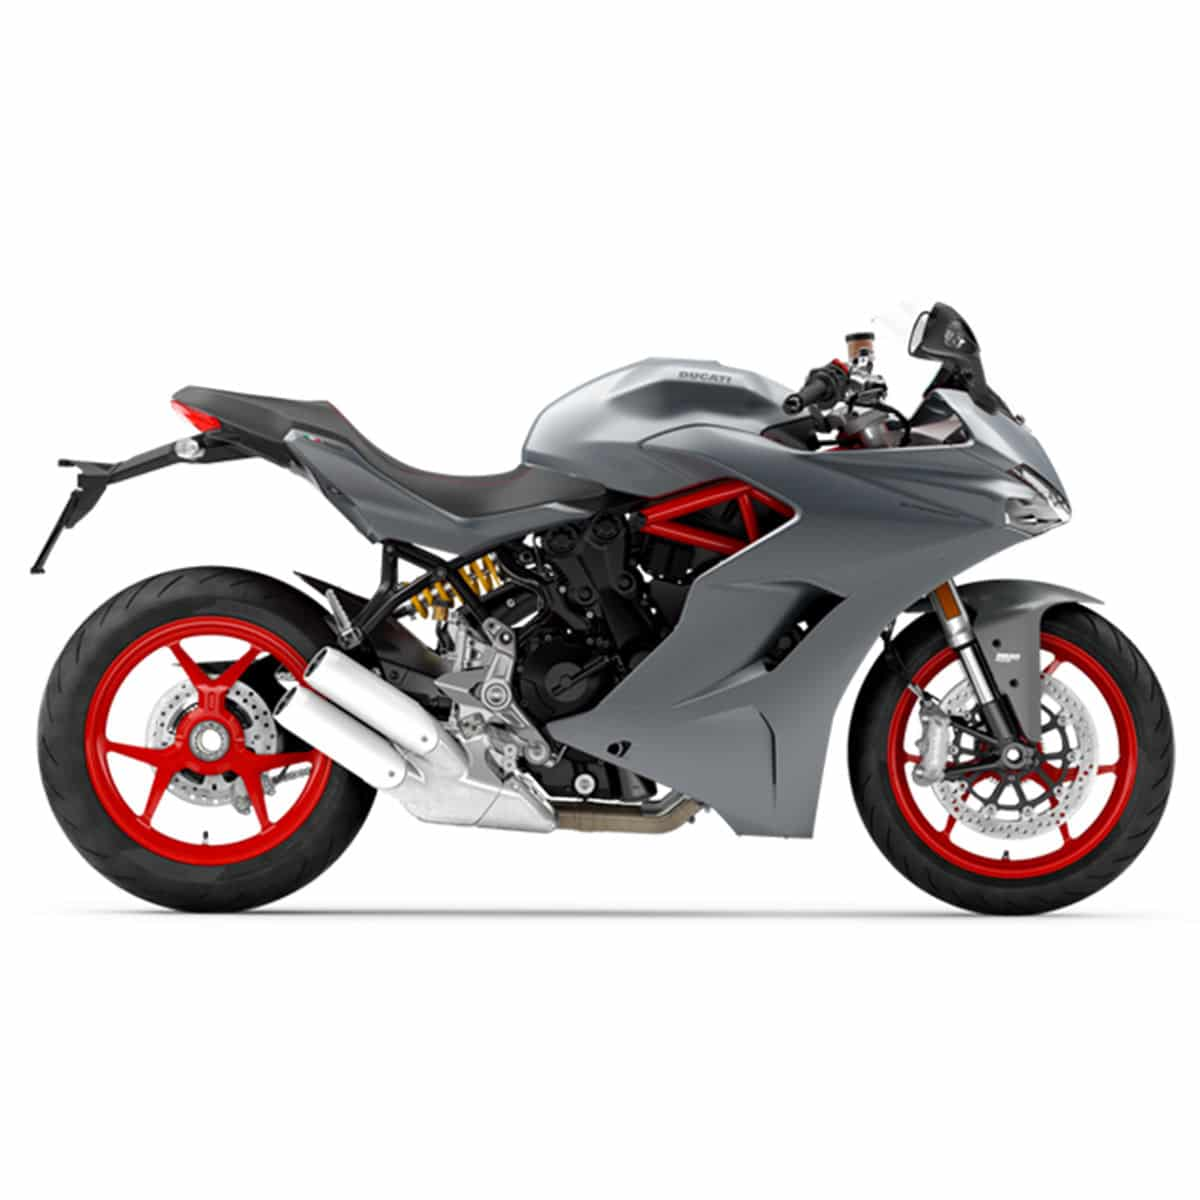 900-ducati-supersport-2020